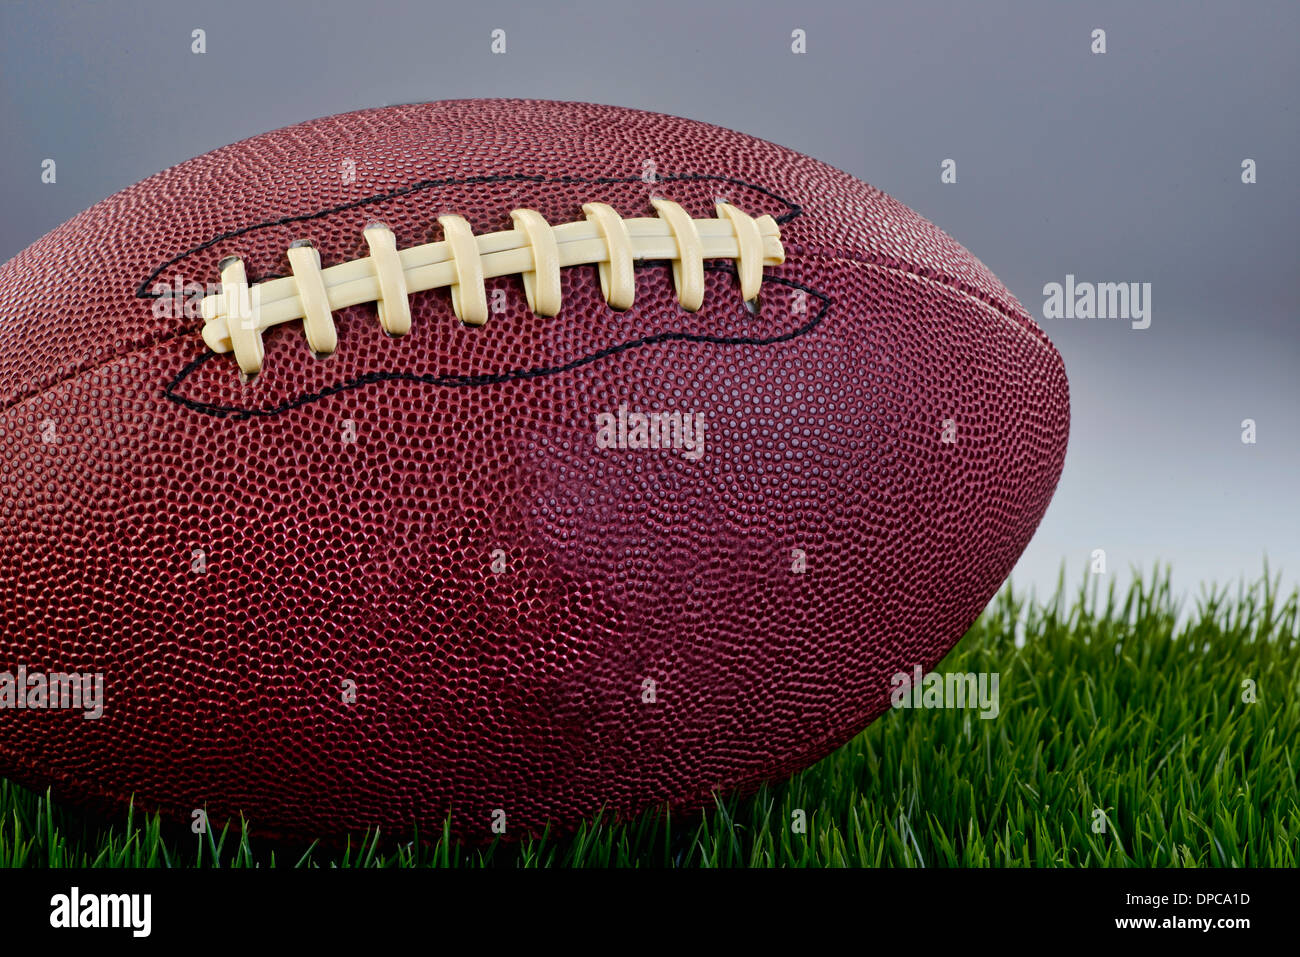 Leather football on green grass field. - Stock Image